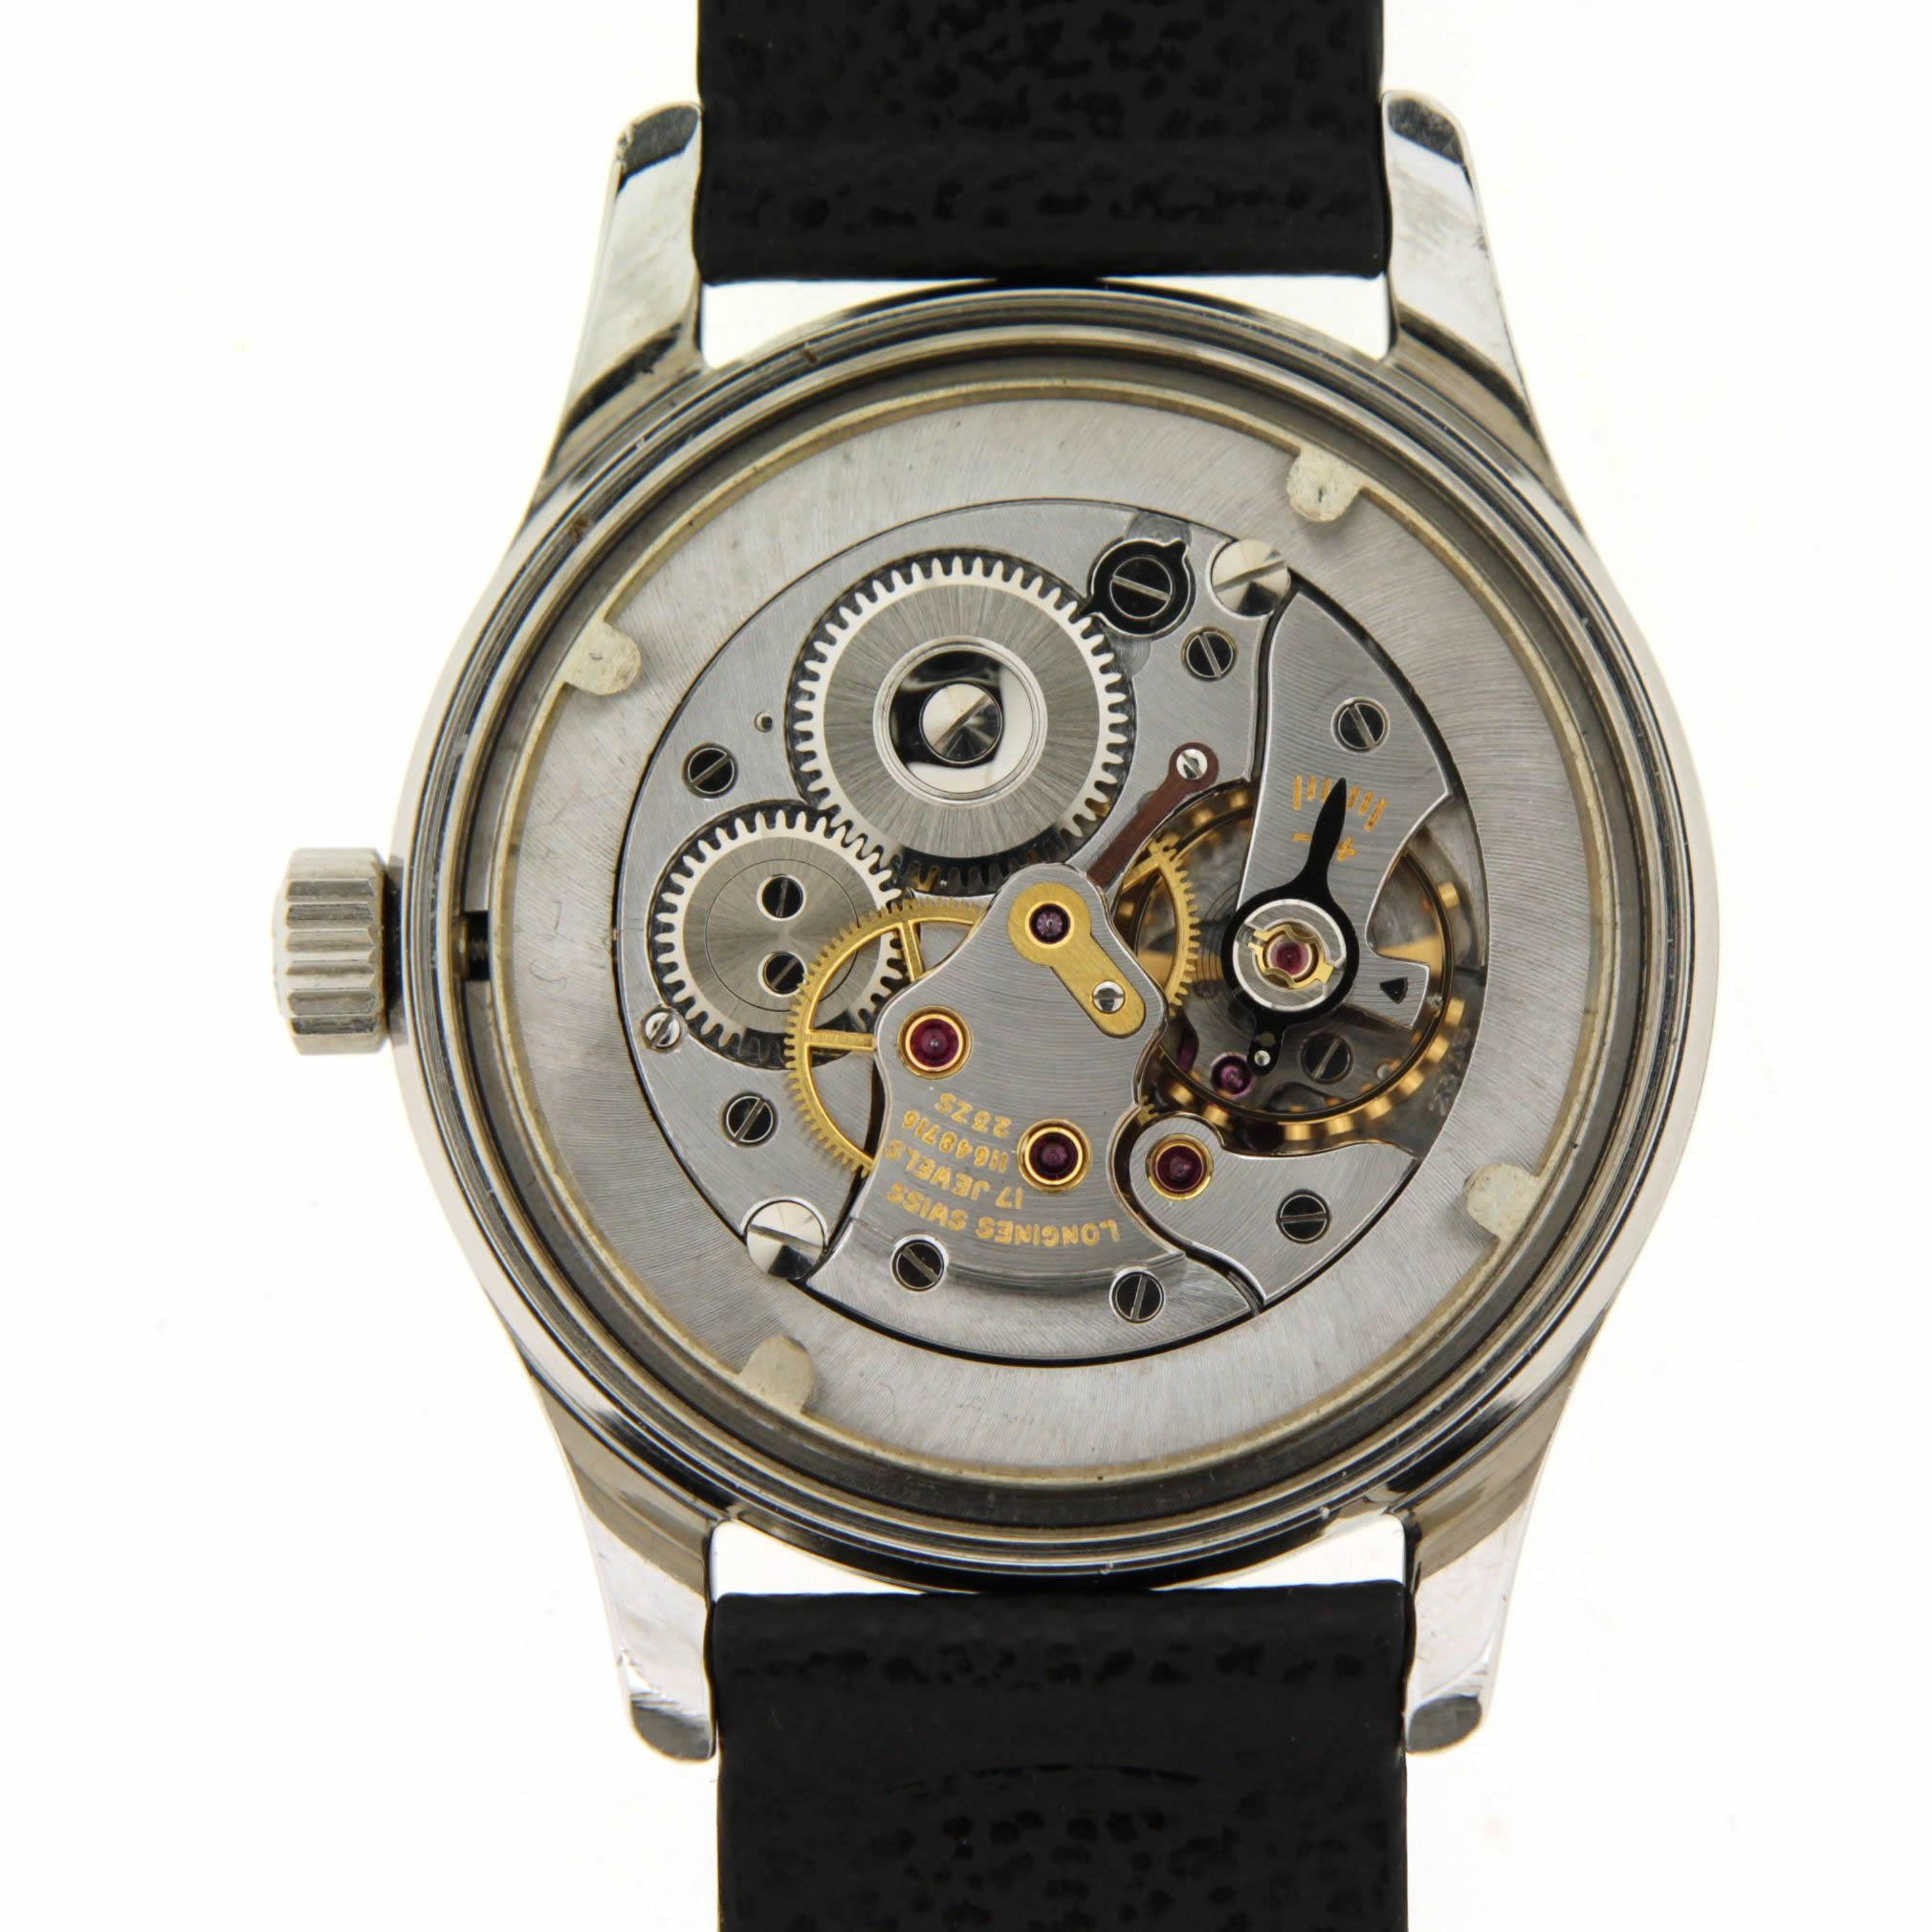 Longines watch movement picture